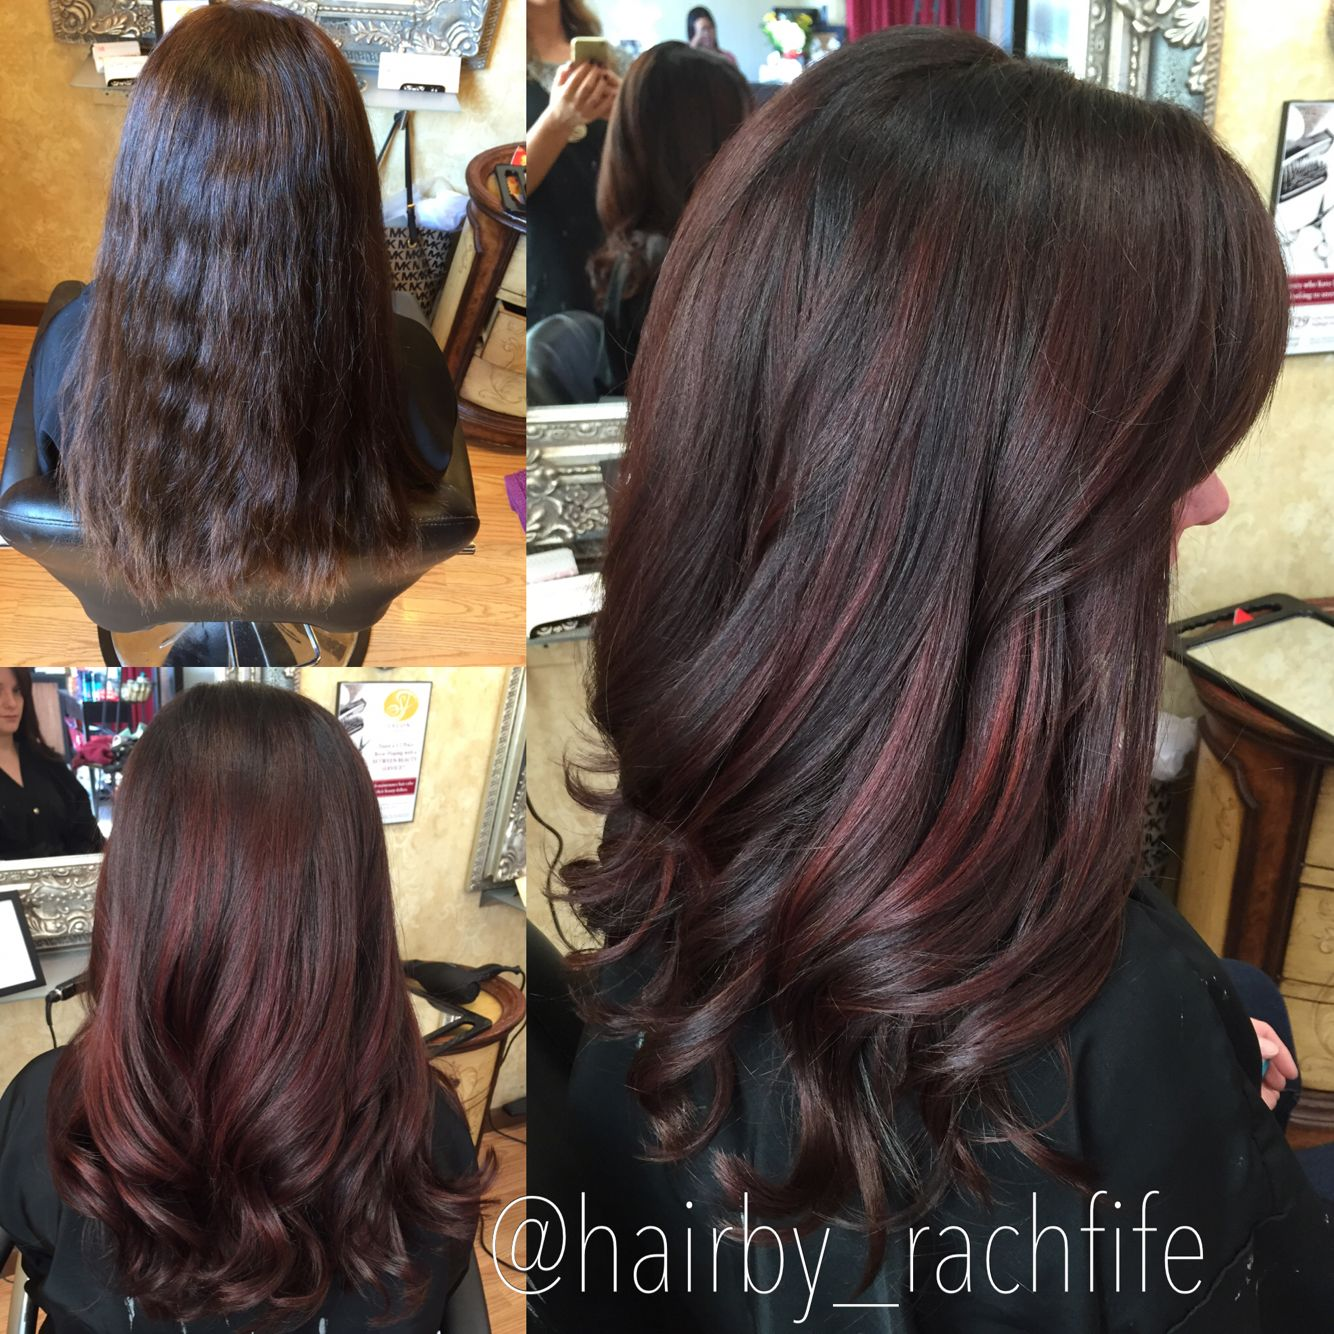 Deep Red Balayage Highlights Custom Color Hair By Rachel Fife Sf Salon Balayage Hair Hair Highlights Brown Hair Balayage